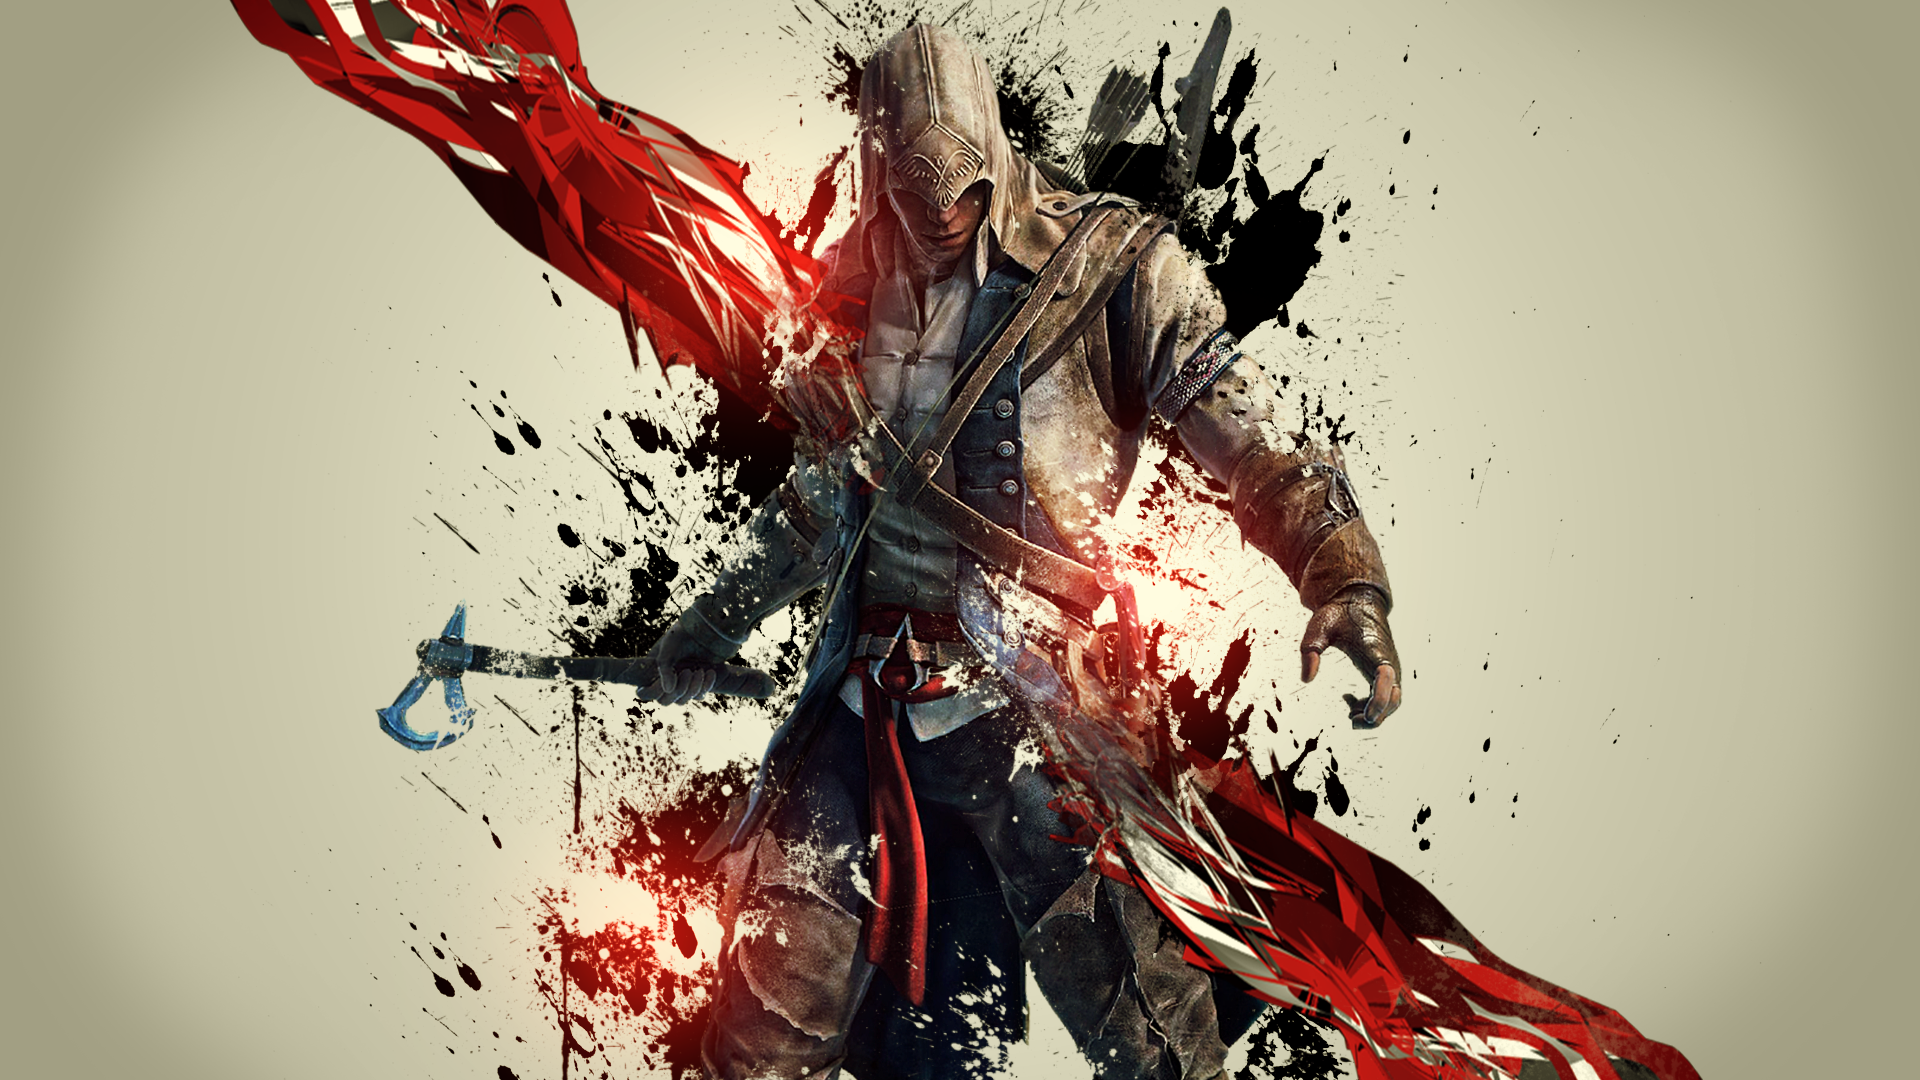 Ultra Viciados Assassins Creed   Wallpaper High Definition 1920x1080